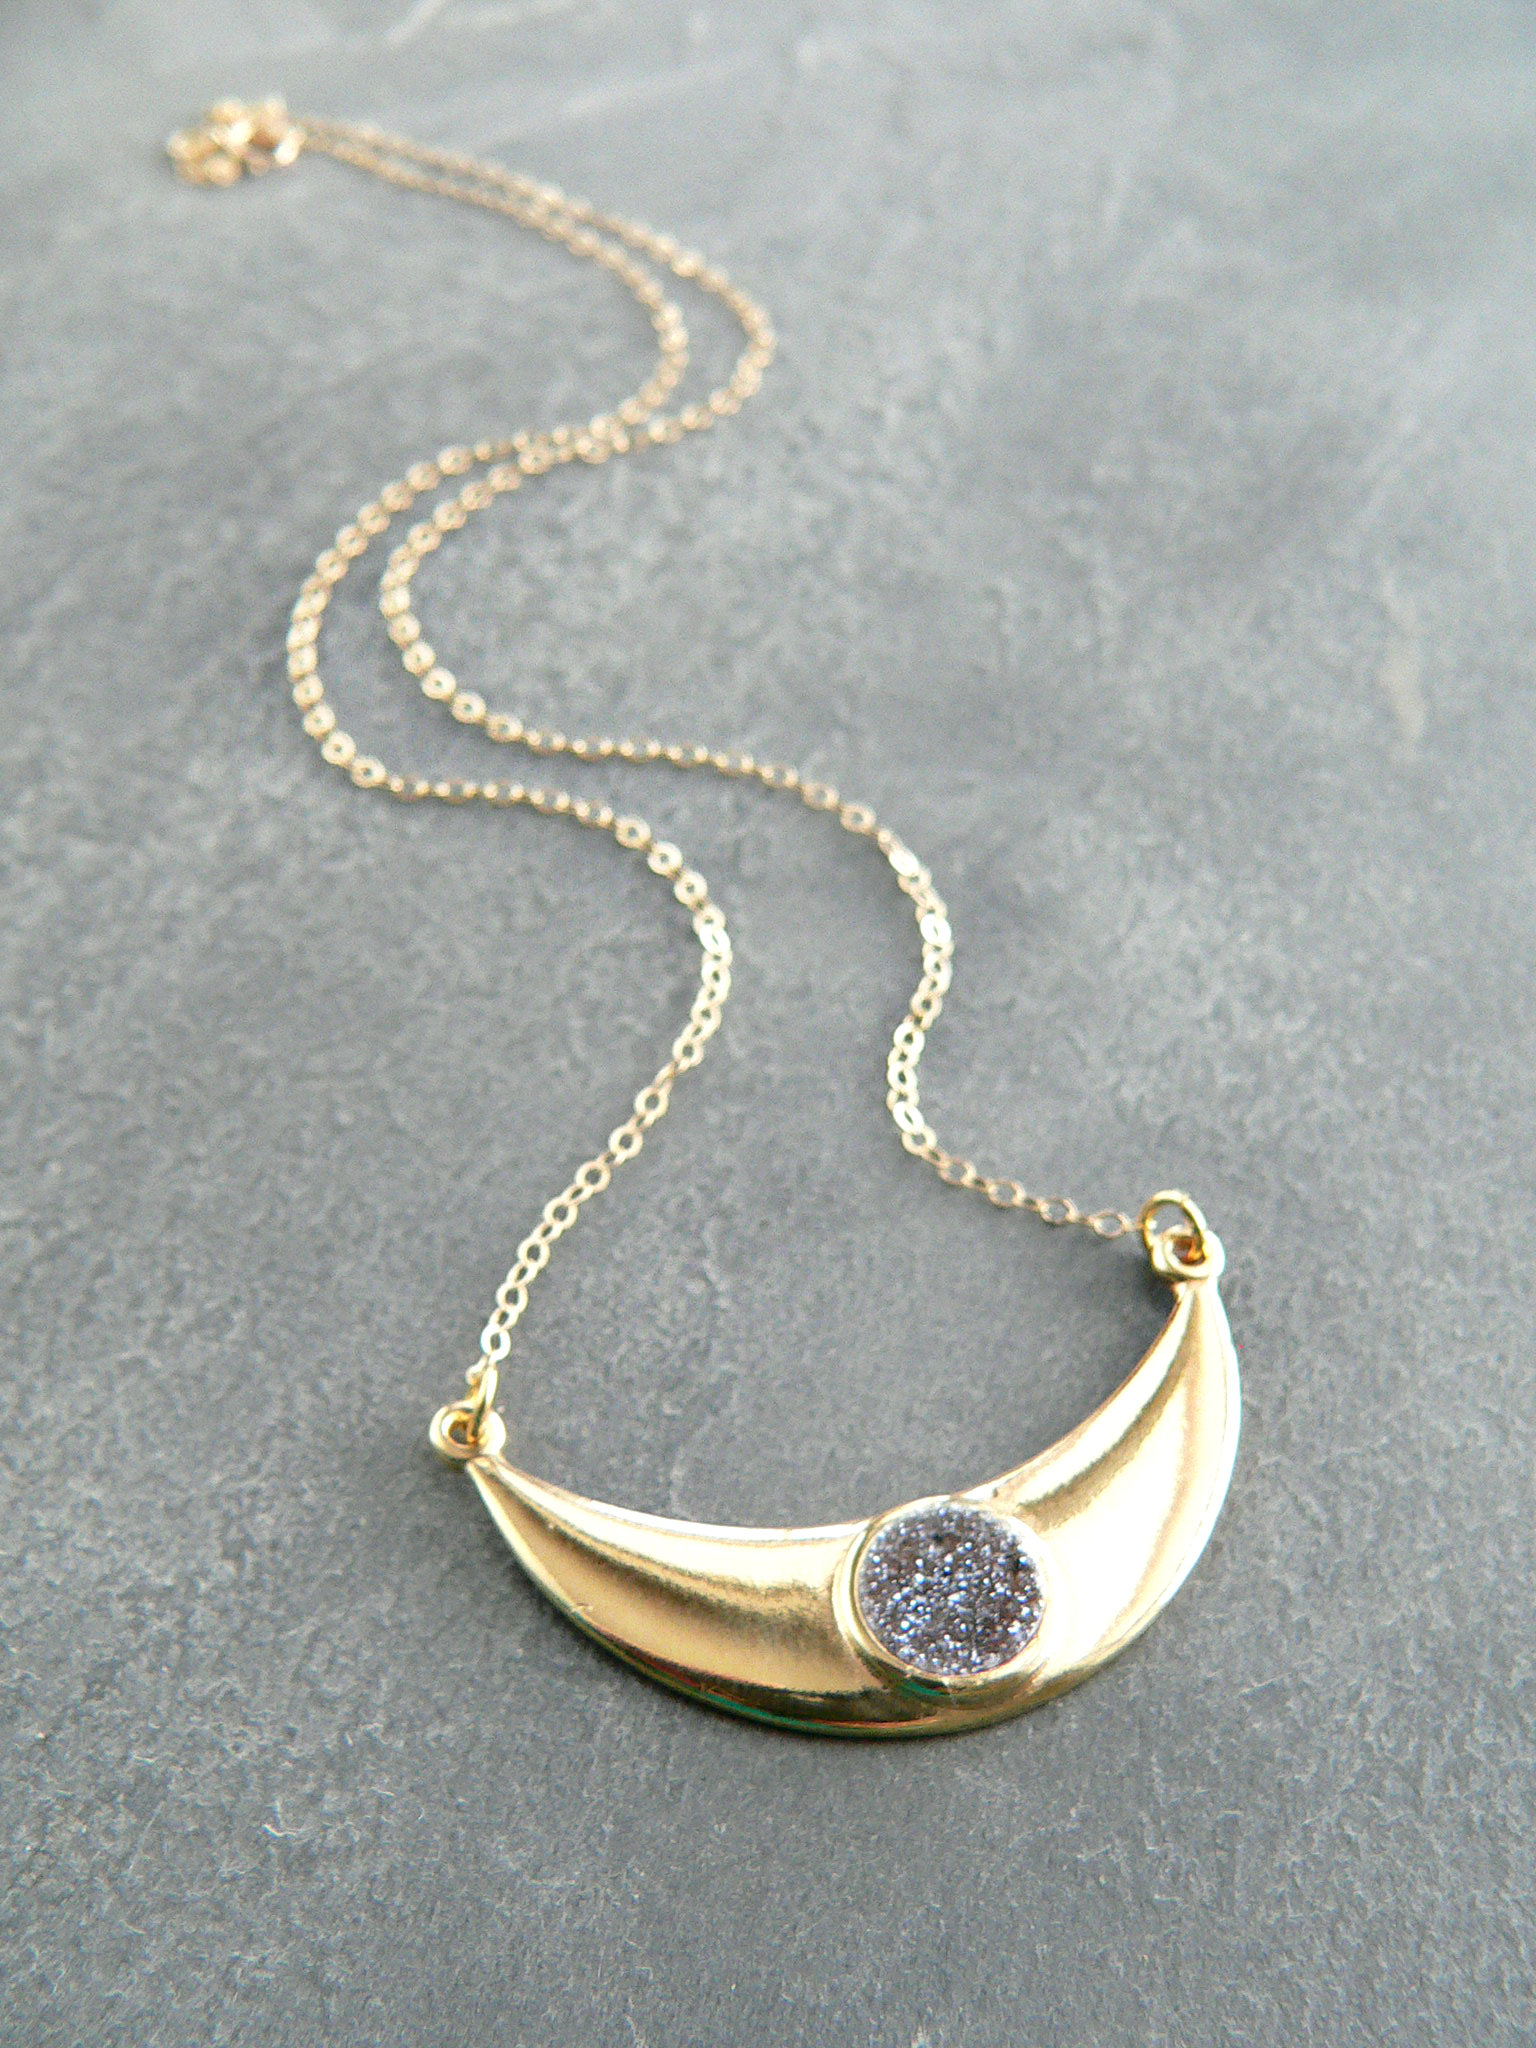 MOON GODDESS DRUZY NECKLACE